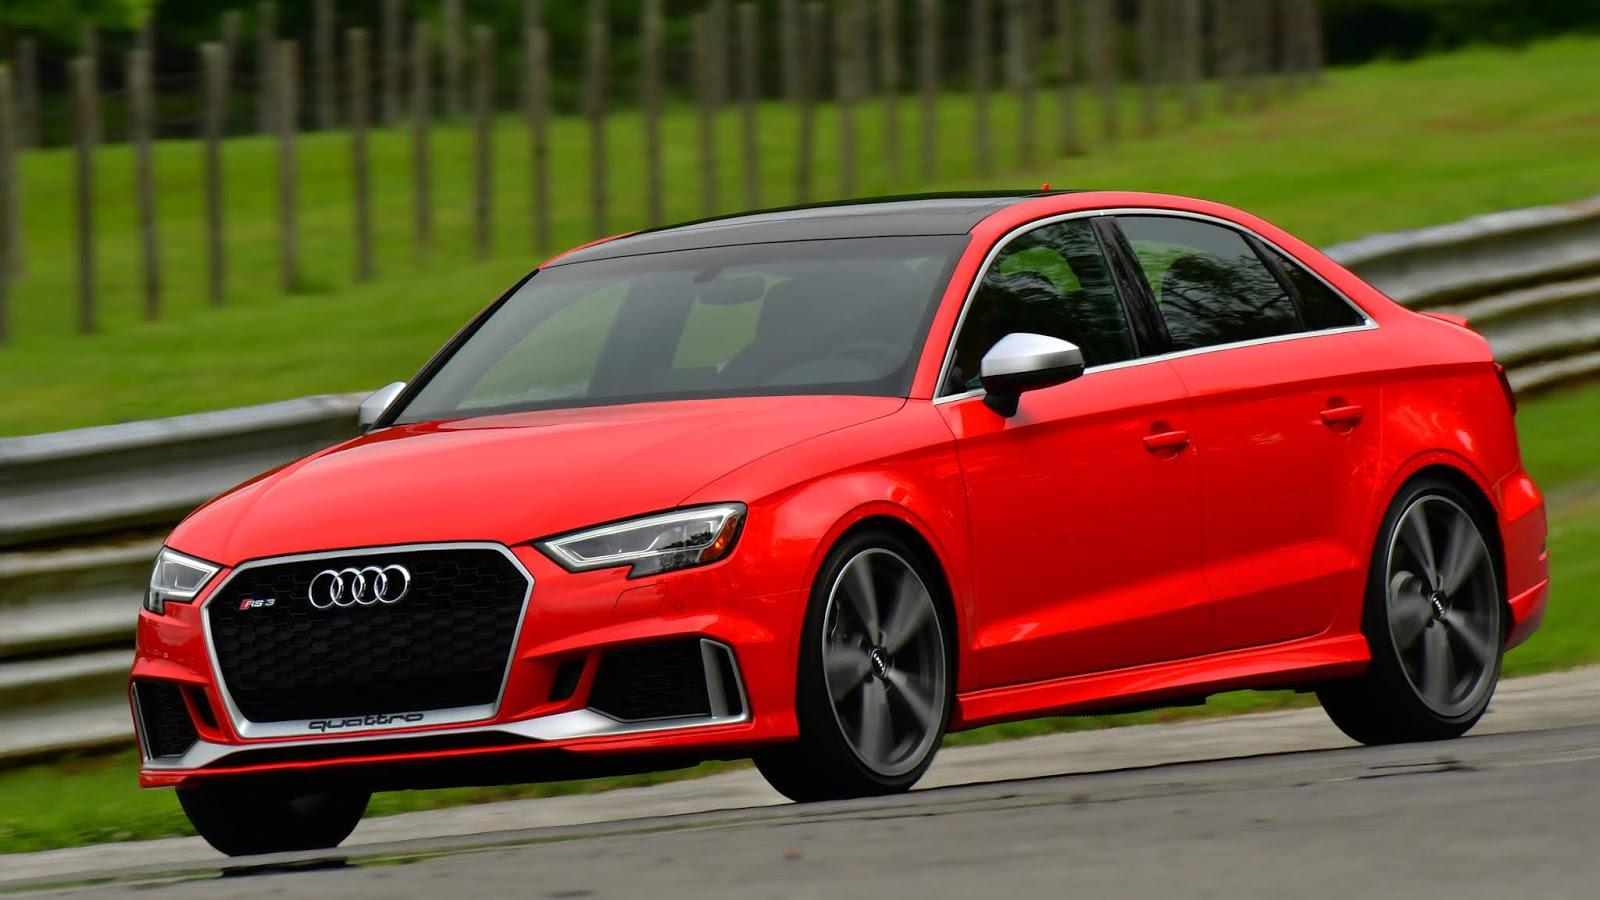 Automotiveblogz: Audi RS3 2019